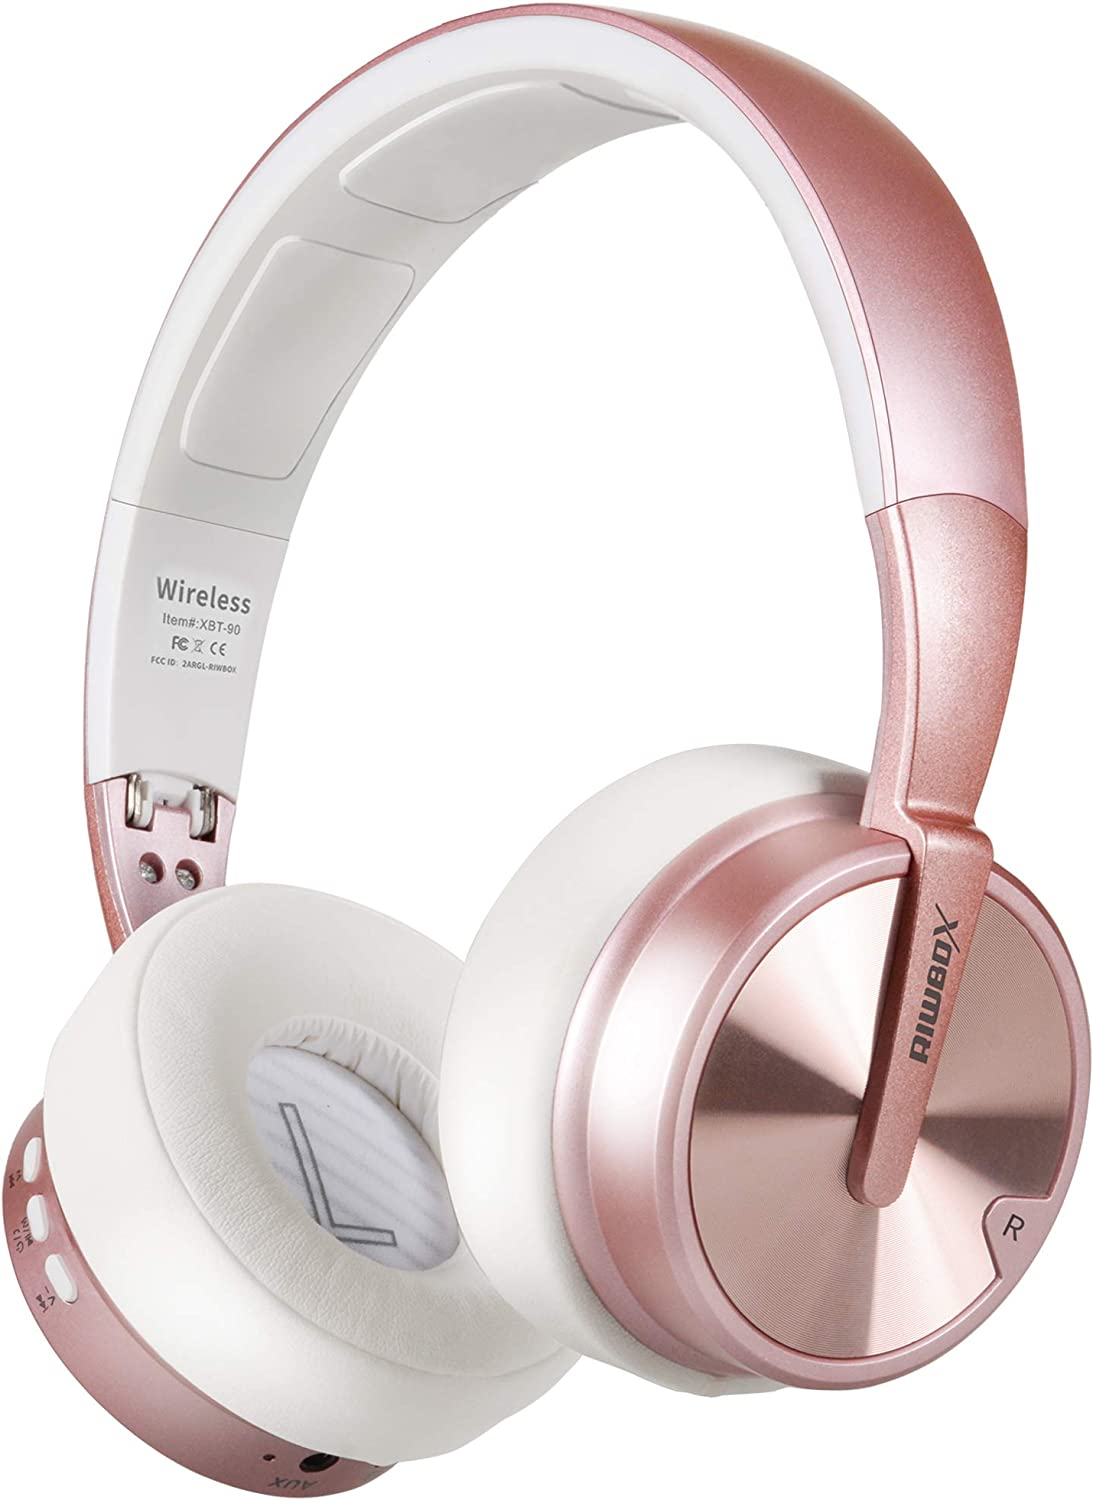 Bluetooth Headphones, Riwbox XBT-90 Foldable Wireless Bluetooth Headphones Over Ear Hi-Fi Stereo Wireless Headset with Mic/TF Card and Volume Control Compatible for PC/Cell Phones/TV/ipad (Rose&Gold)